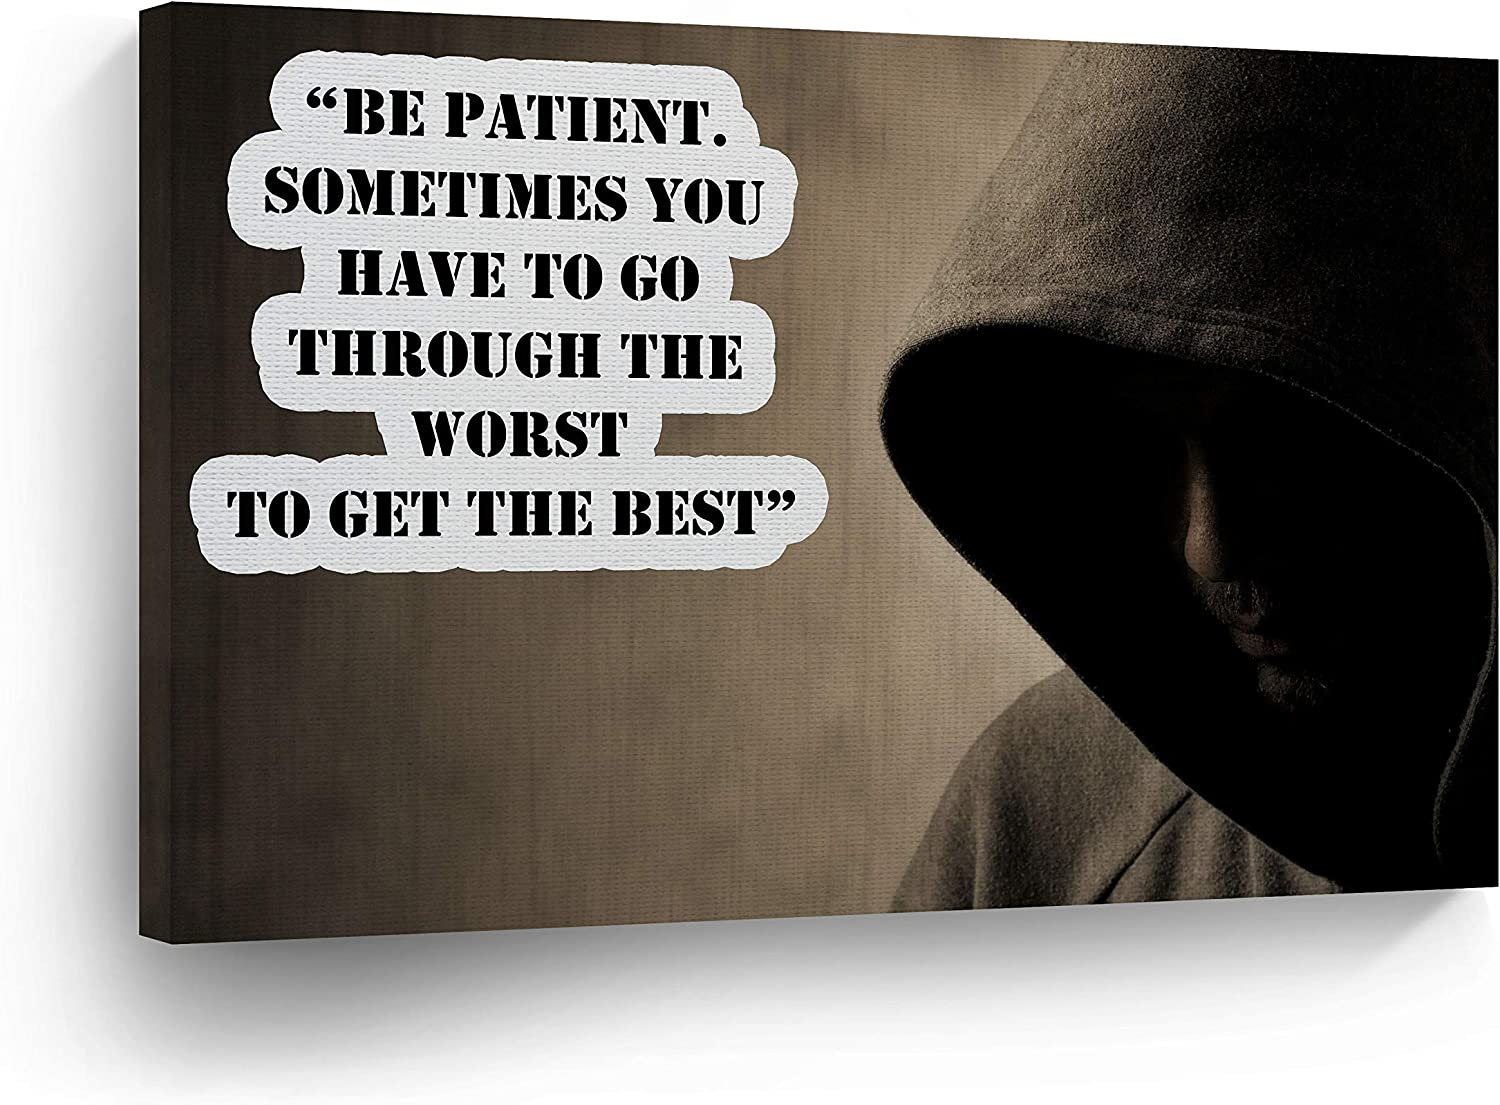 `Be Patient Sometimes You Have To Go Through The Wors To Get Best` Quote CANVAS PRINT Motivational Wall Art Saying Home Decor Artwork Gallery Stretch Ready to Hang - %100 Handmade in the USA - 30x40